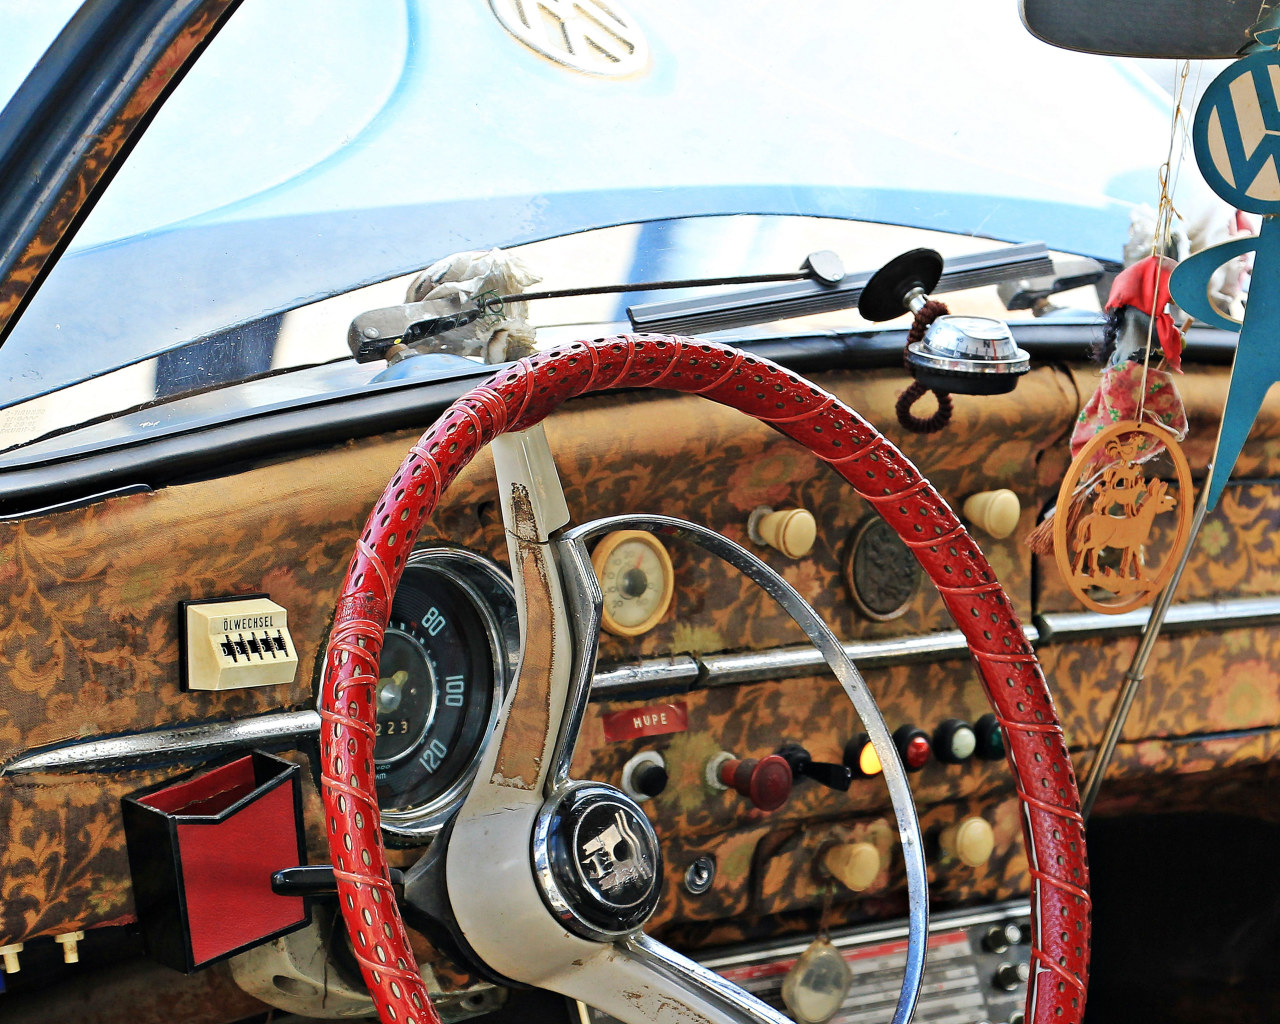 Red And White Steering Wheel Wallpaper Vw Beetle Oldtimer Vehicle Wallpaper For You Hd Wallpaper For Desktop Mobile Wallpaper steering wheel retro red car